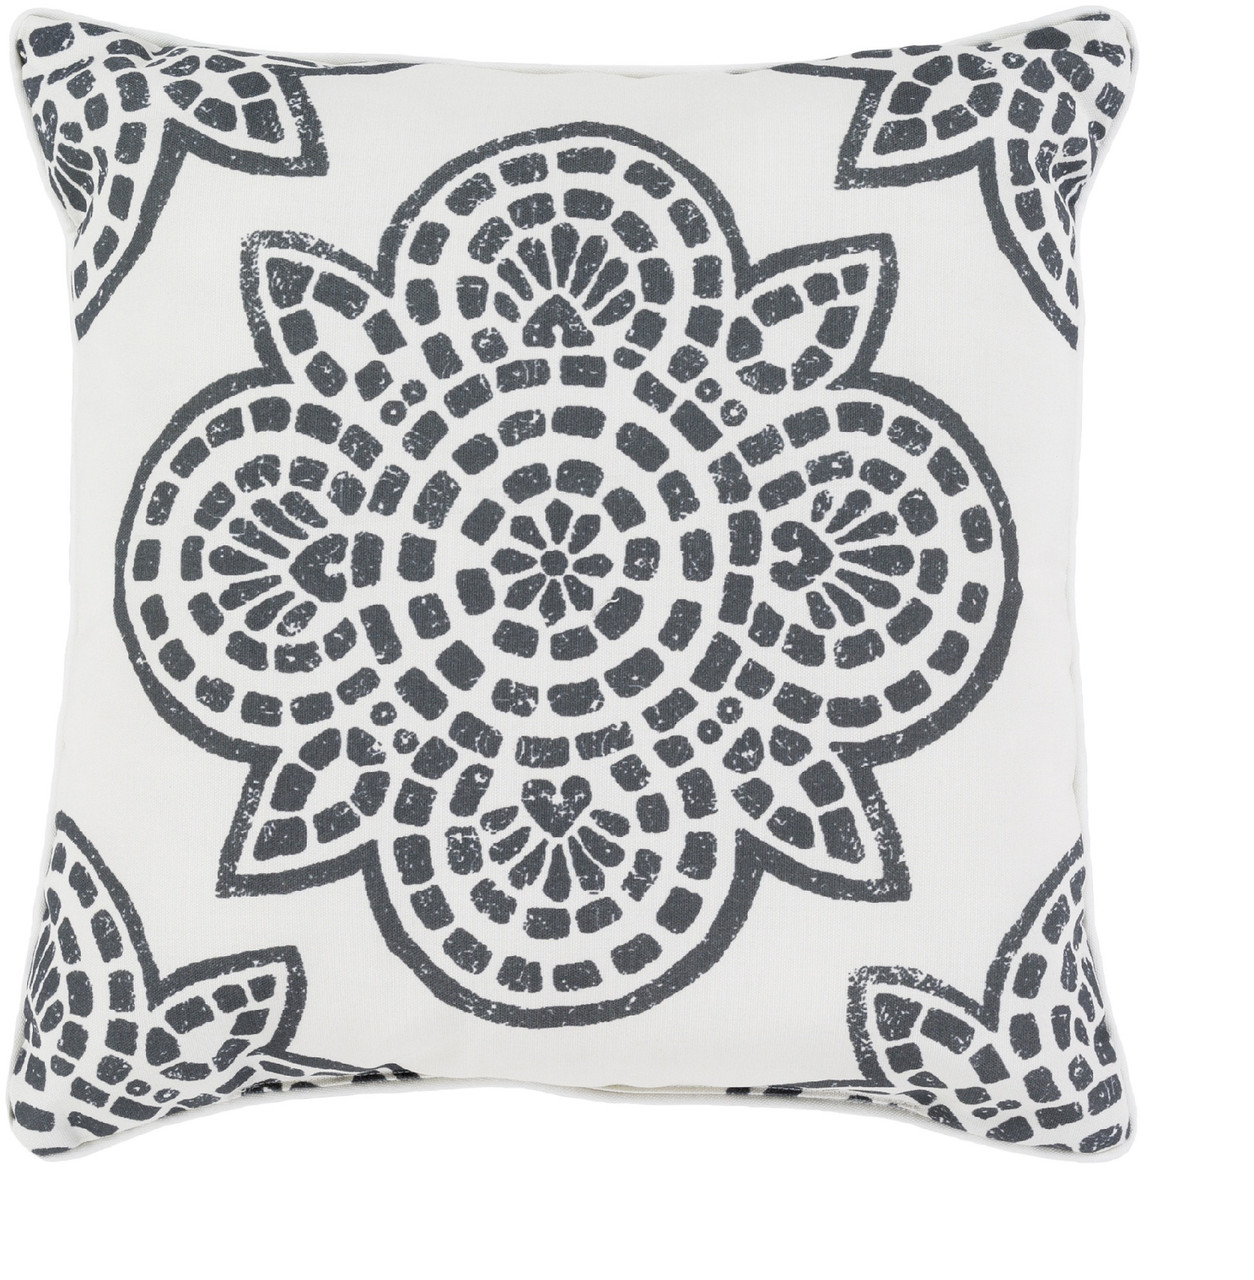 Awesome 20 White And Black Printed Designed Decorative Square Throw Pillow 31495650 Evergreenethics Interior Chair Design Evergreenethicsorg